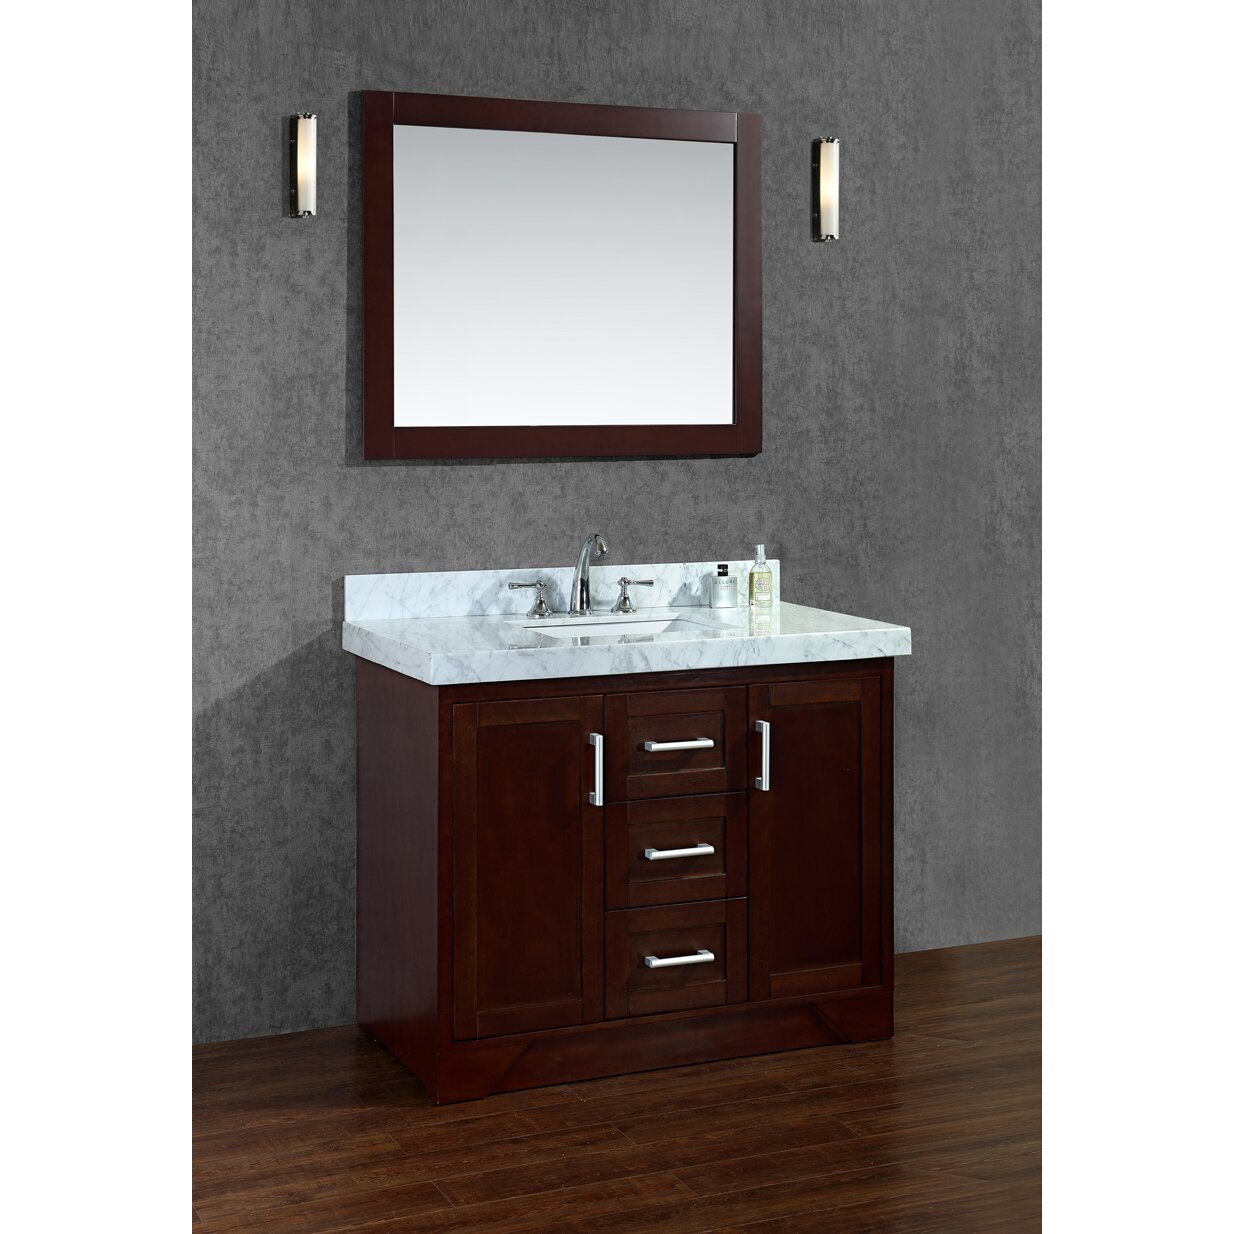 42 Bathroom Vanity Ariel Bath Ashbury 42 Single Bathroom Vanity Set With Mirror